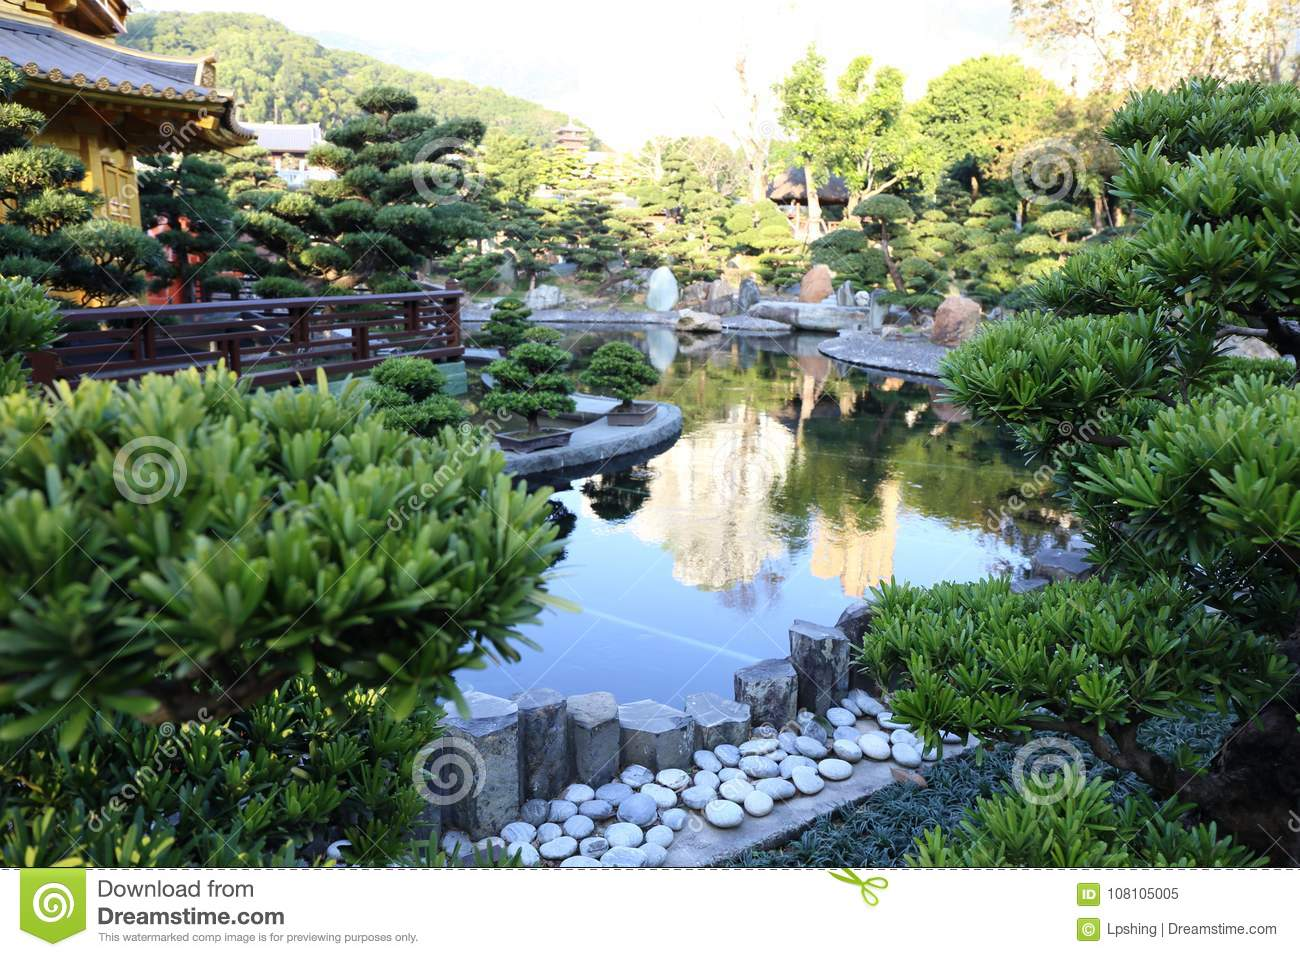 Download Chinese Style Garden Stock Image. Image Of Chinese, Beautiful    108105005